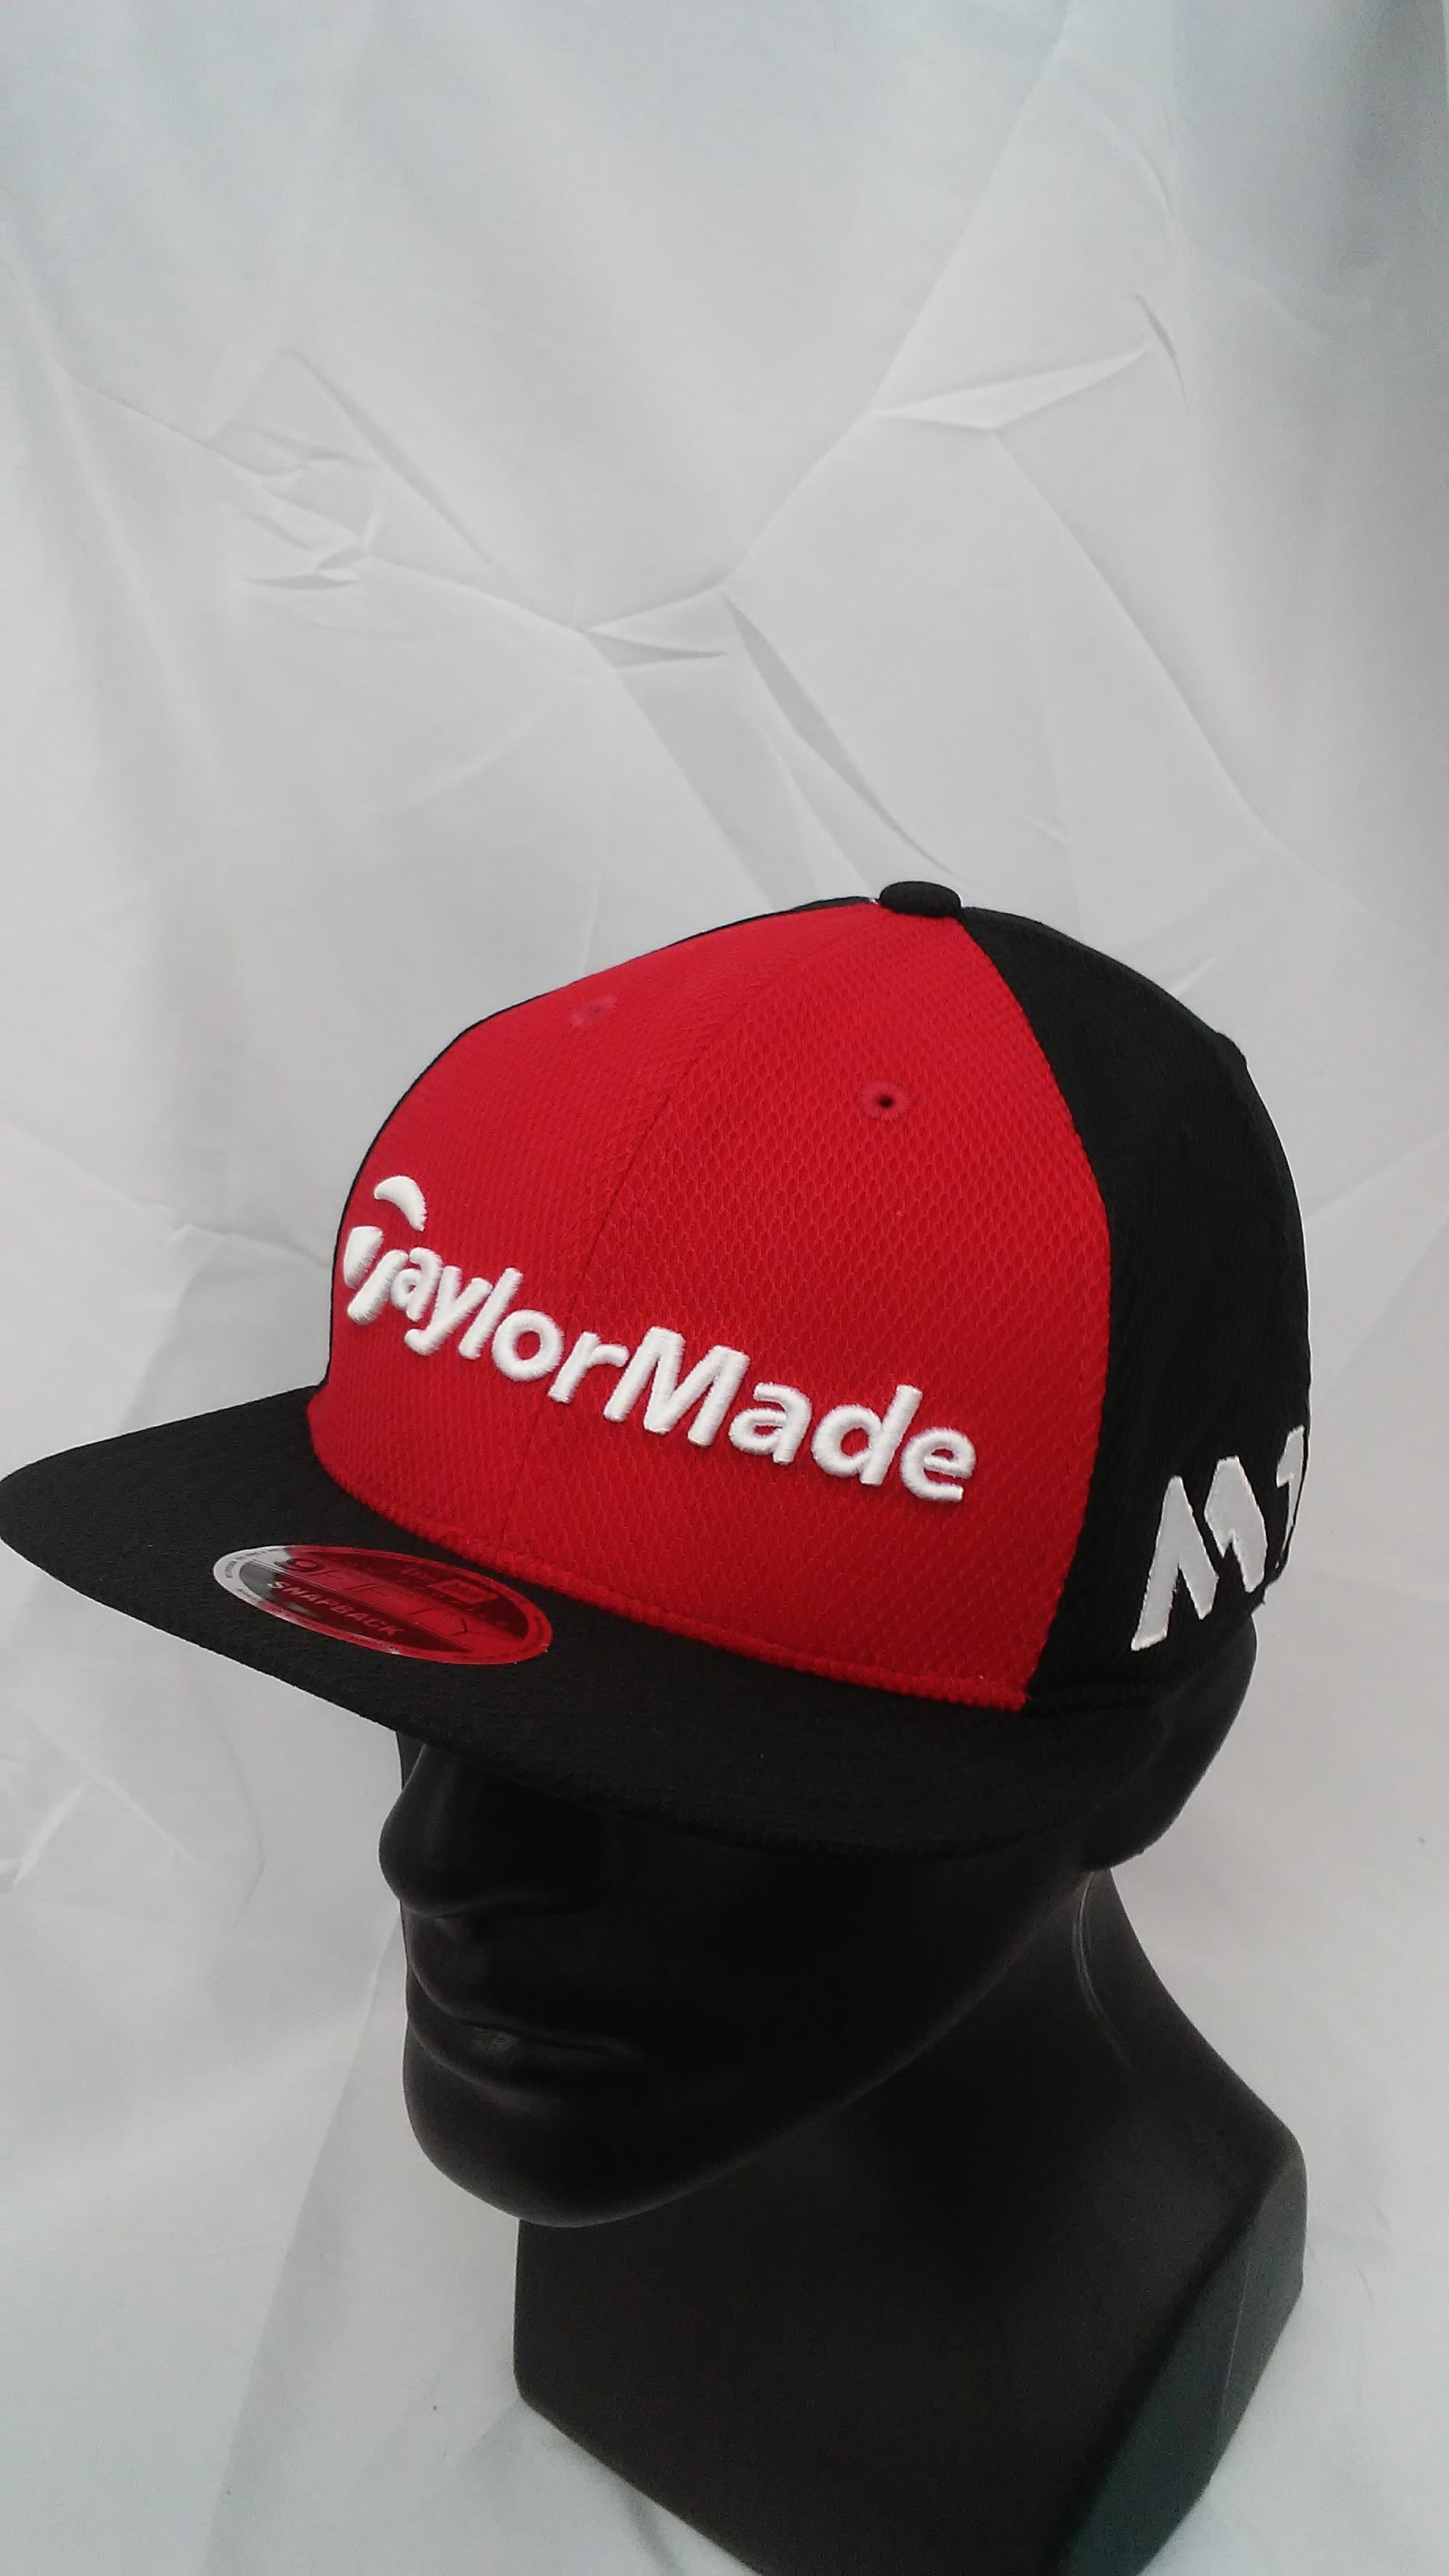 6e4a30a5c2147 Visit our eBay Store for more great deals  Hurricane Golf Men s TaylorMade  Golf Tour 9Fifty New Era Snapback Cap Red Black M1   M2 Logos BUY IT NOW   7.99!